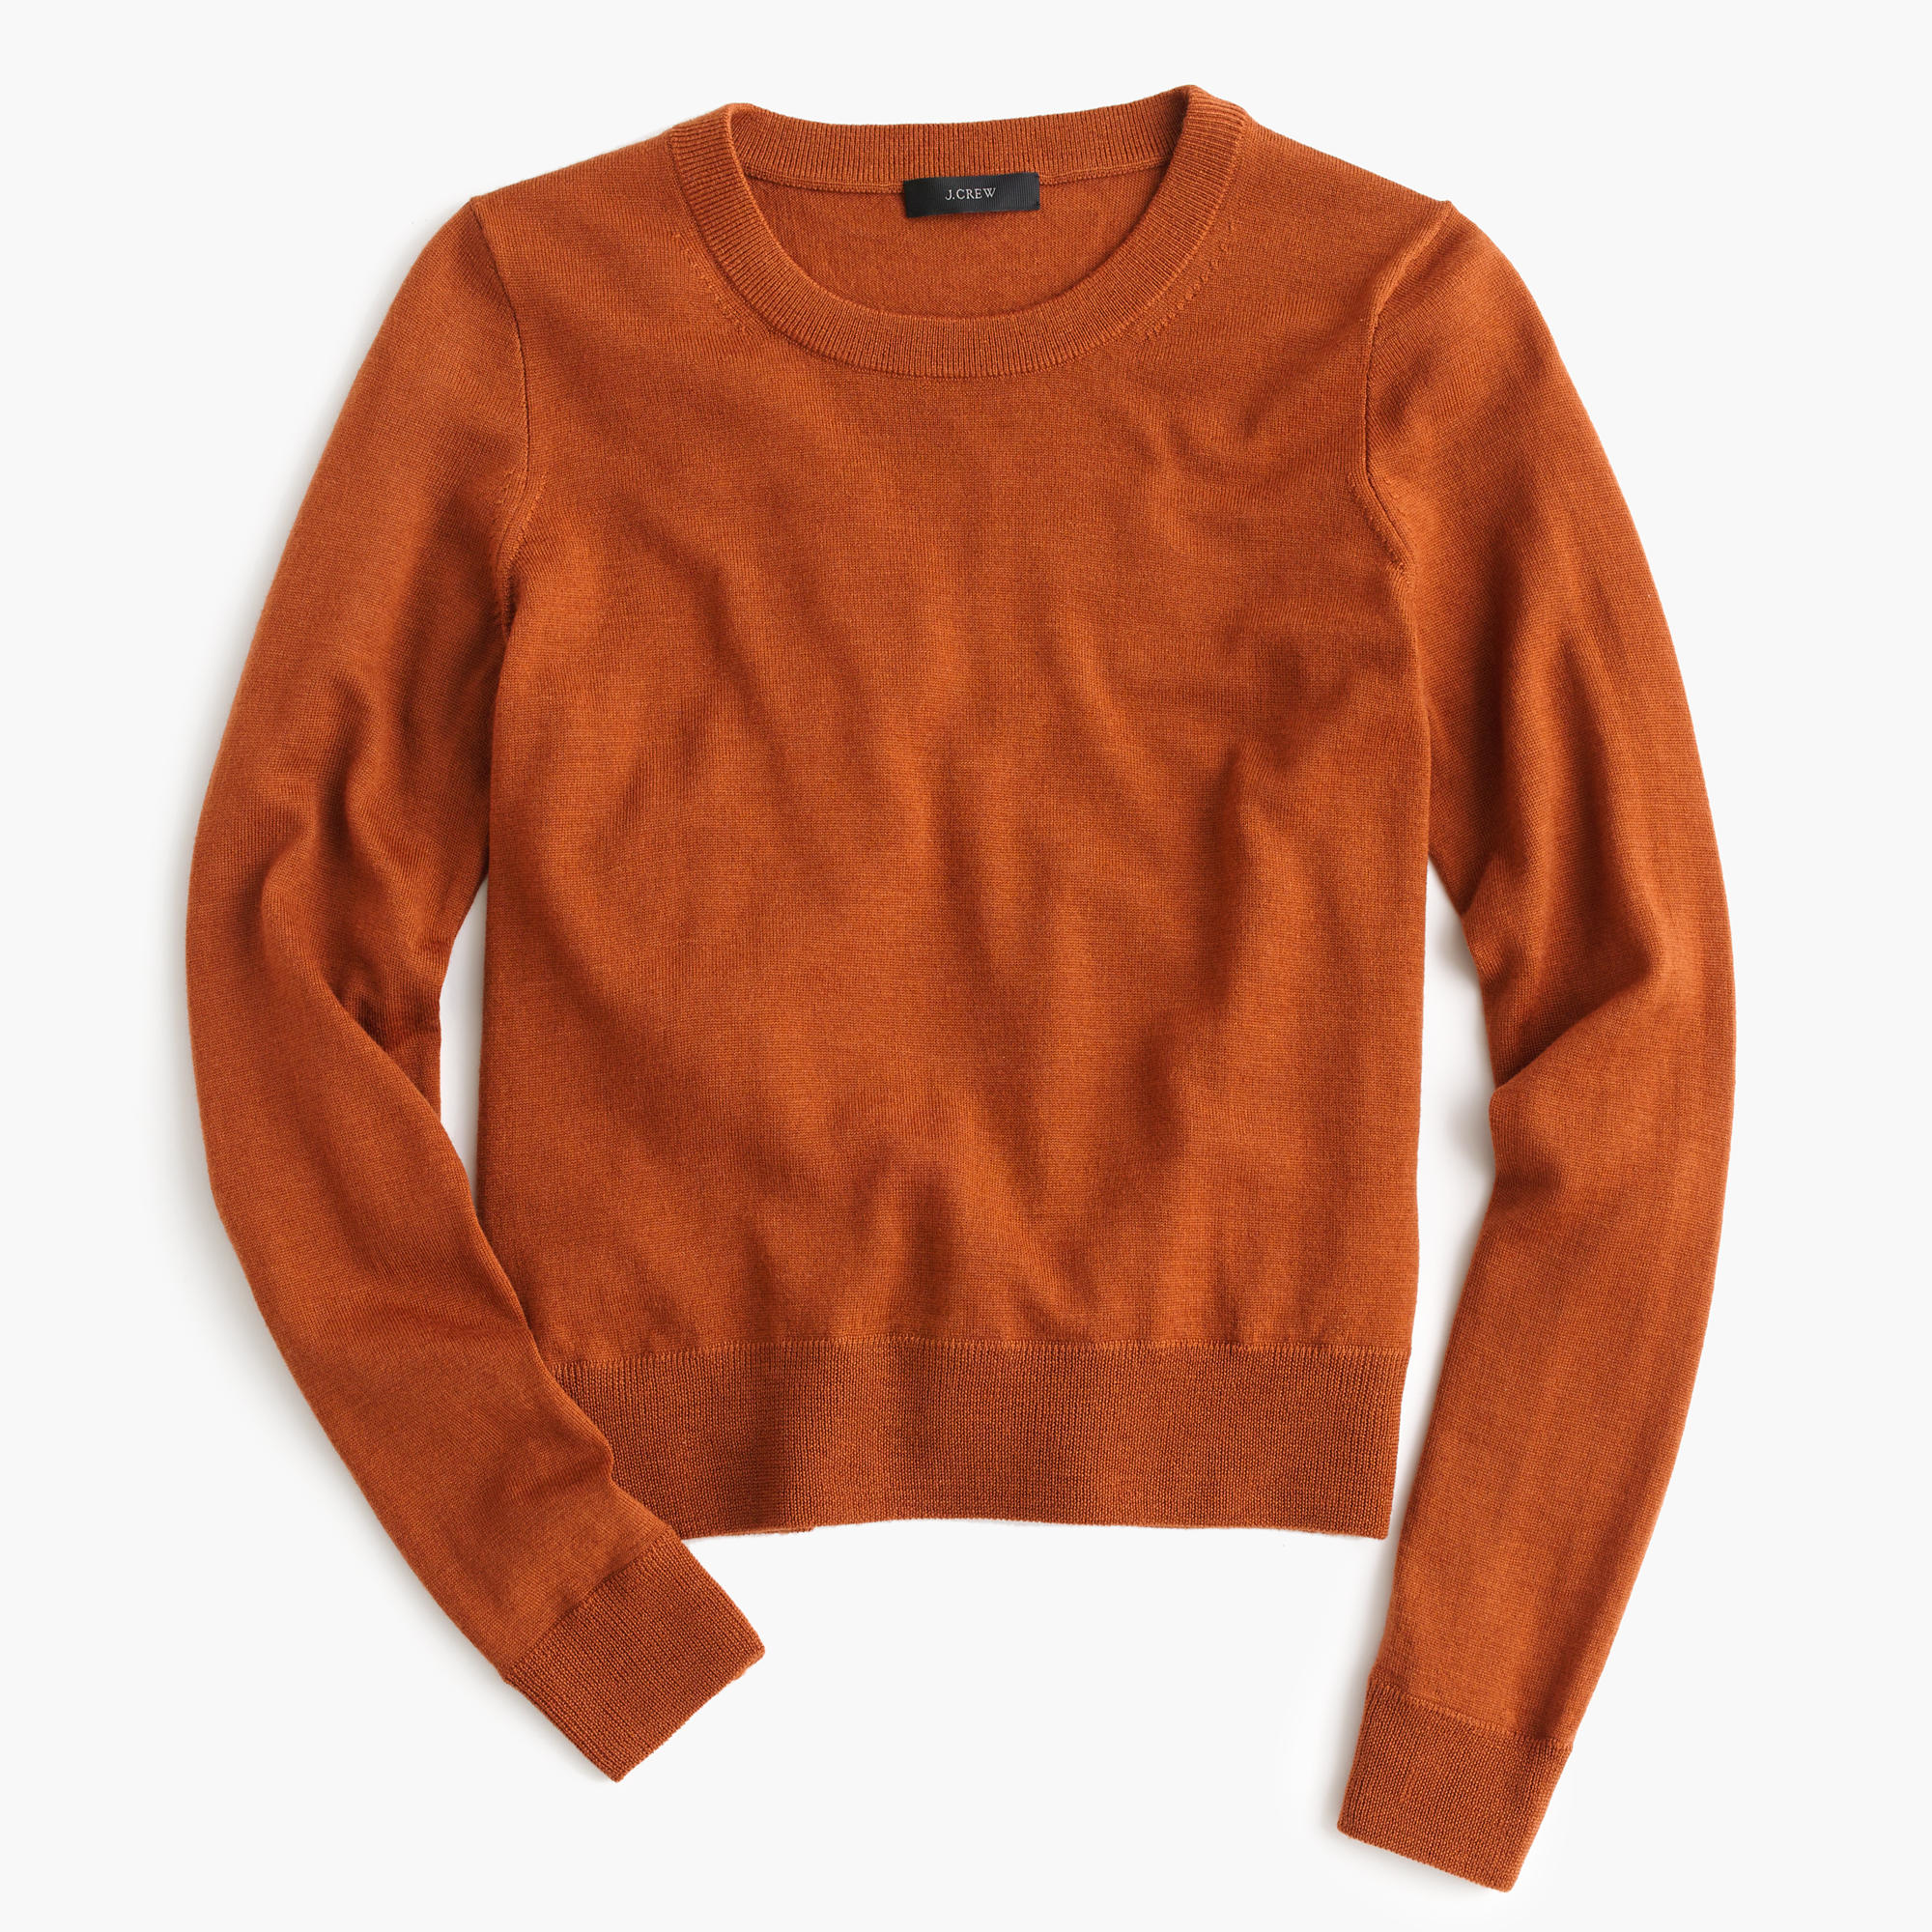 J.crew Merino Wool Crewneck Sweater in Brown | Lyst